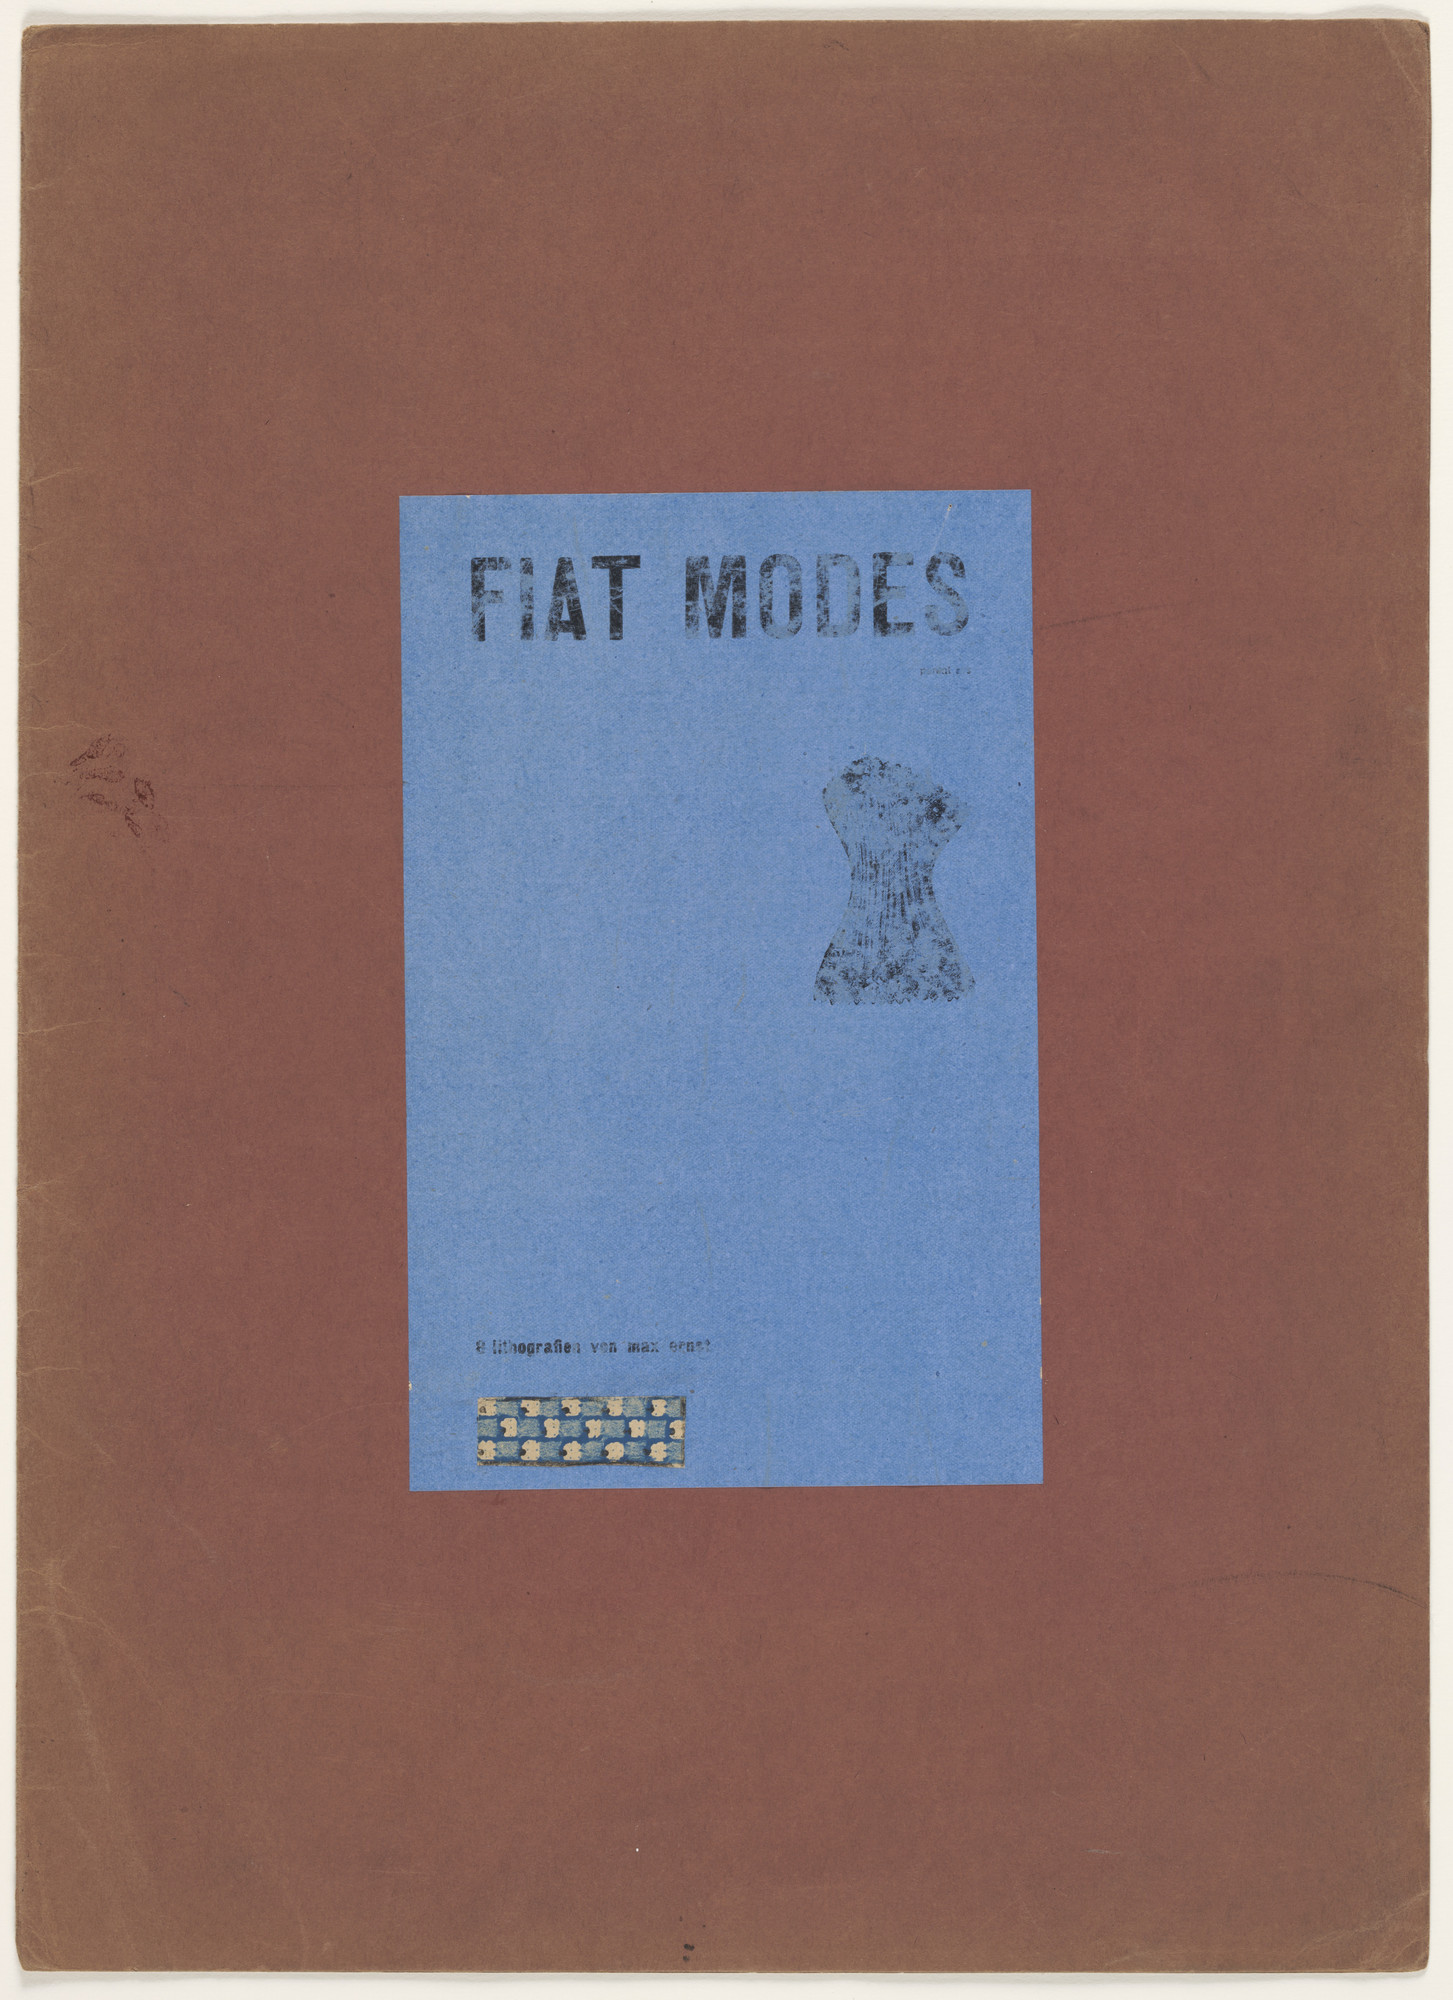 Max Ernst. Cover from Let There Be Fashion, Down with Art (Fiat modes pereat ars). 1920